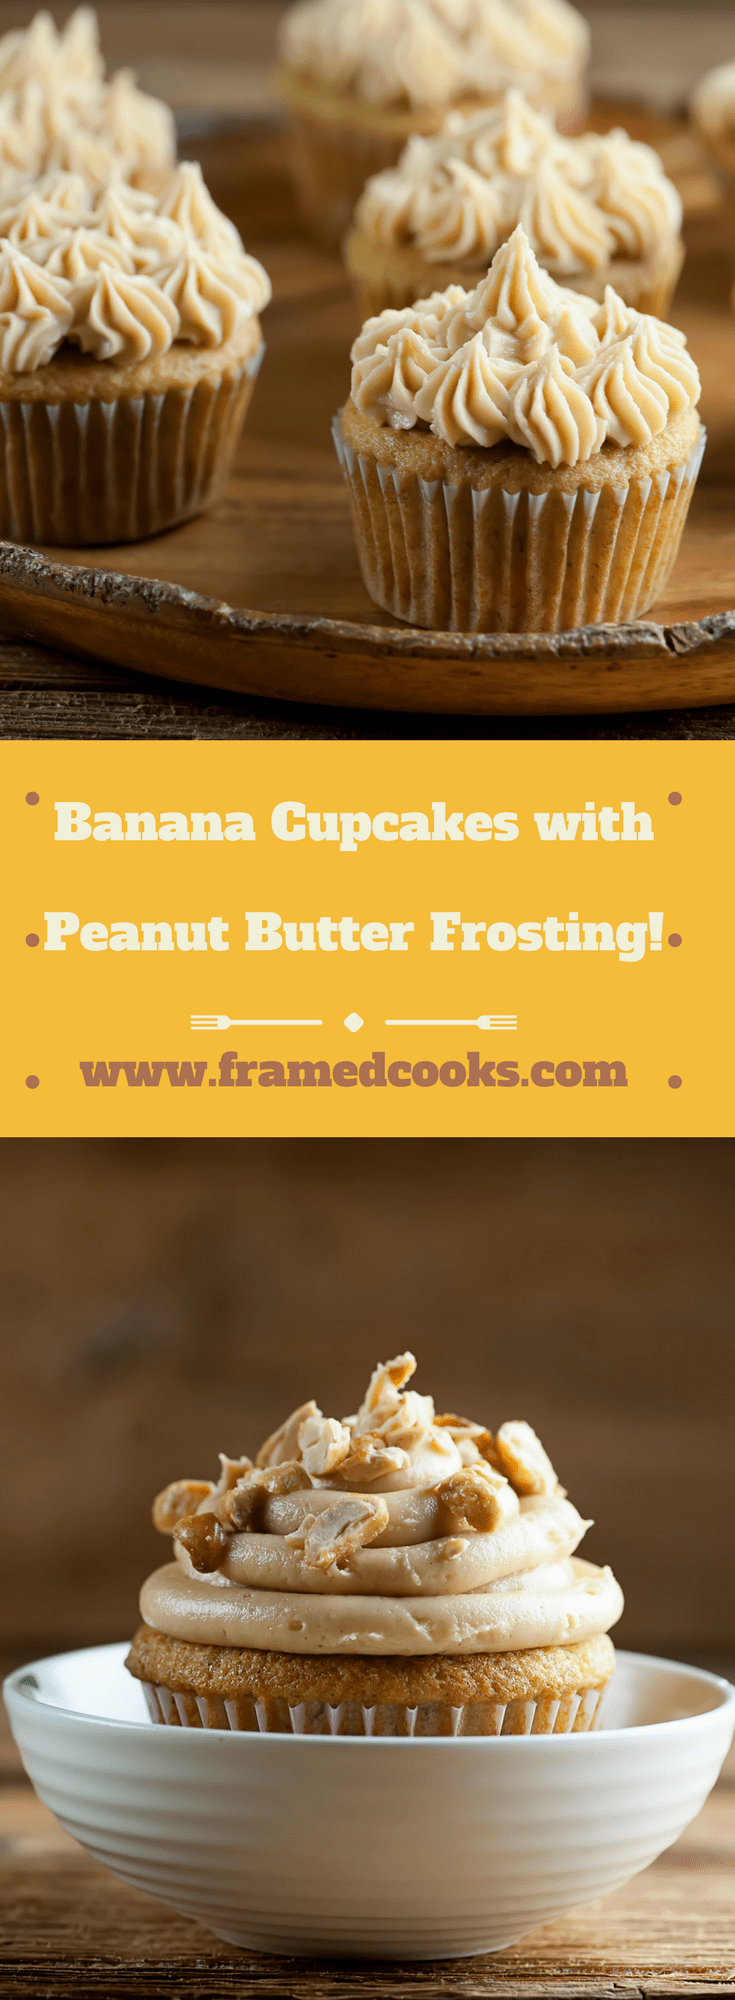 This fun recipe for banana cupcakes with peanut butter frosting takes two favorite flavors and puts them together in one delicious dessert!  Oh, and it's a great way to use up leftover bananas.